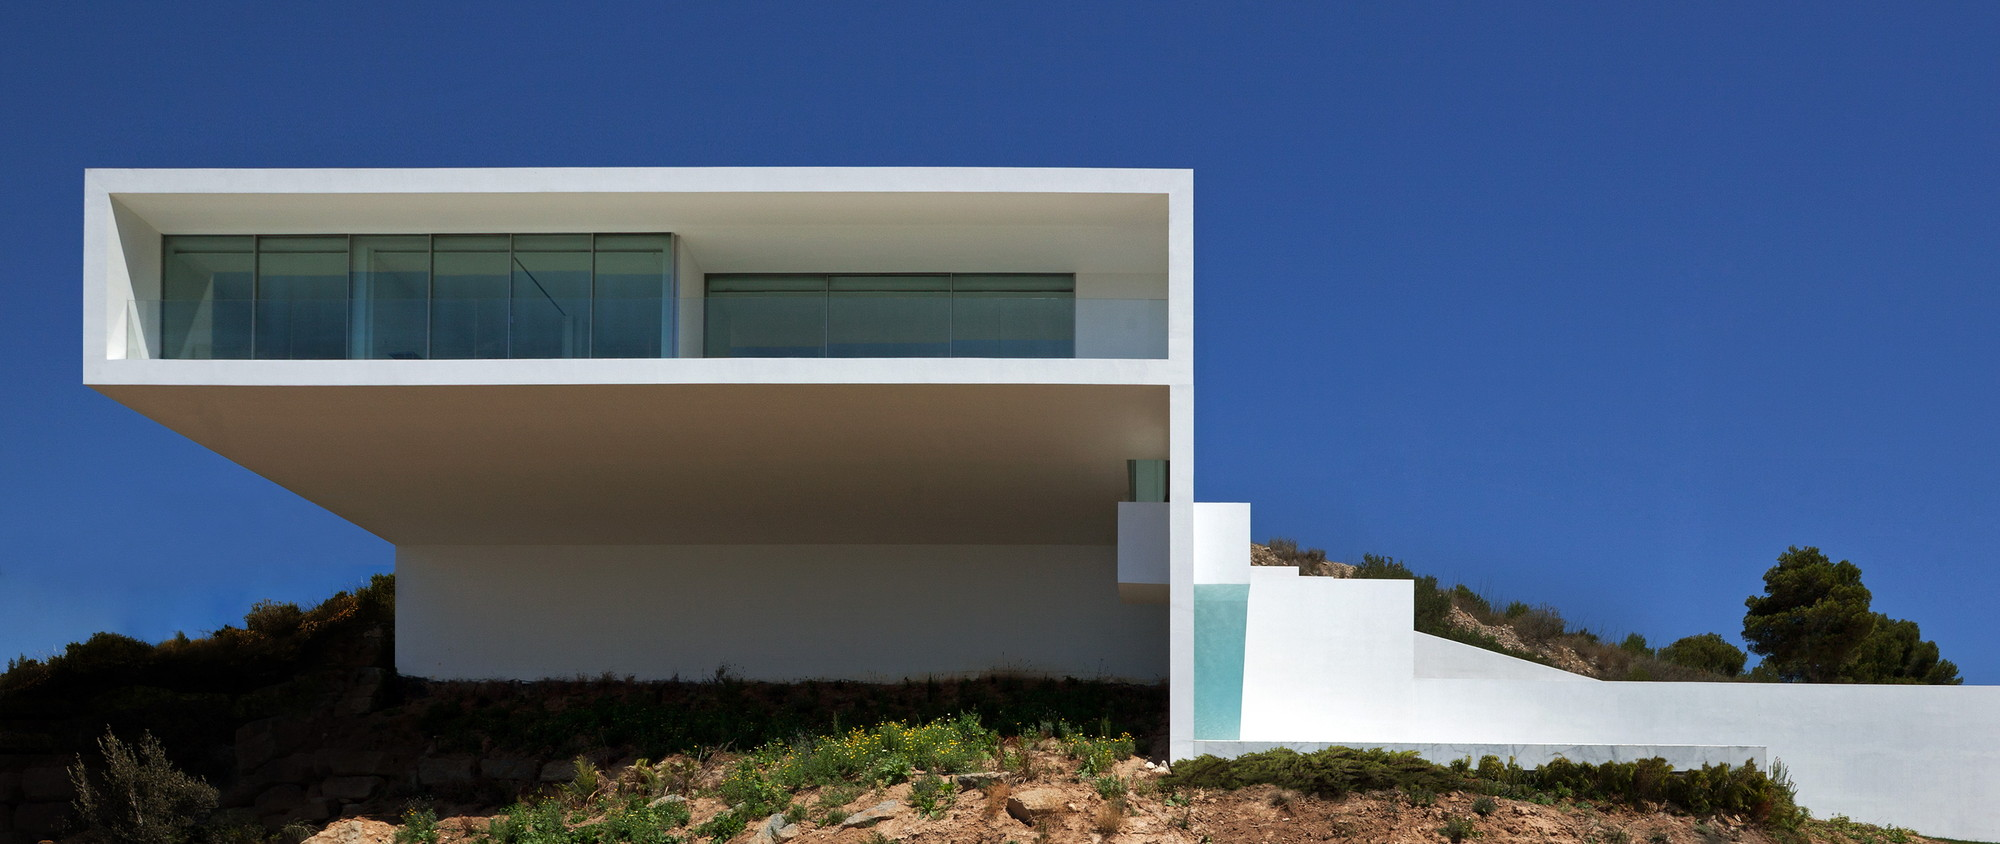 Gallery of house on the cliff fran silvestre arquitectos 3 for Fran silvestre house on the cliff